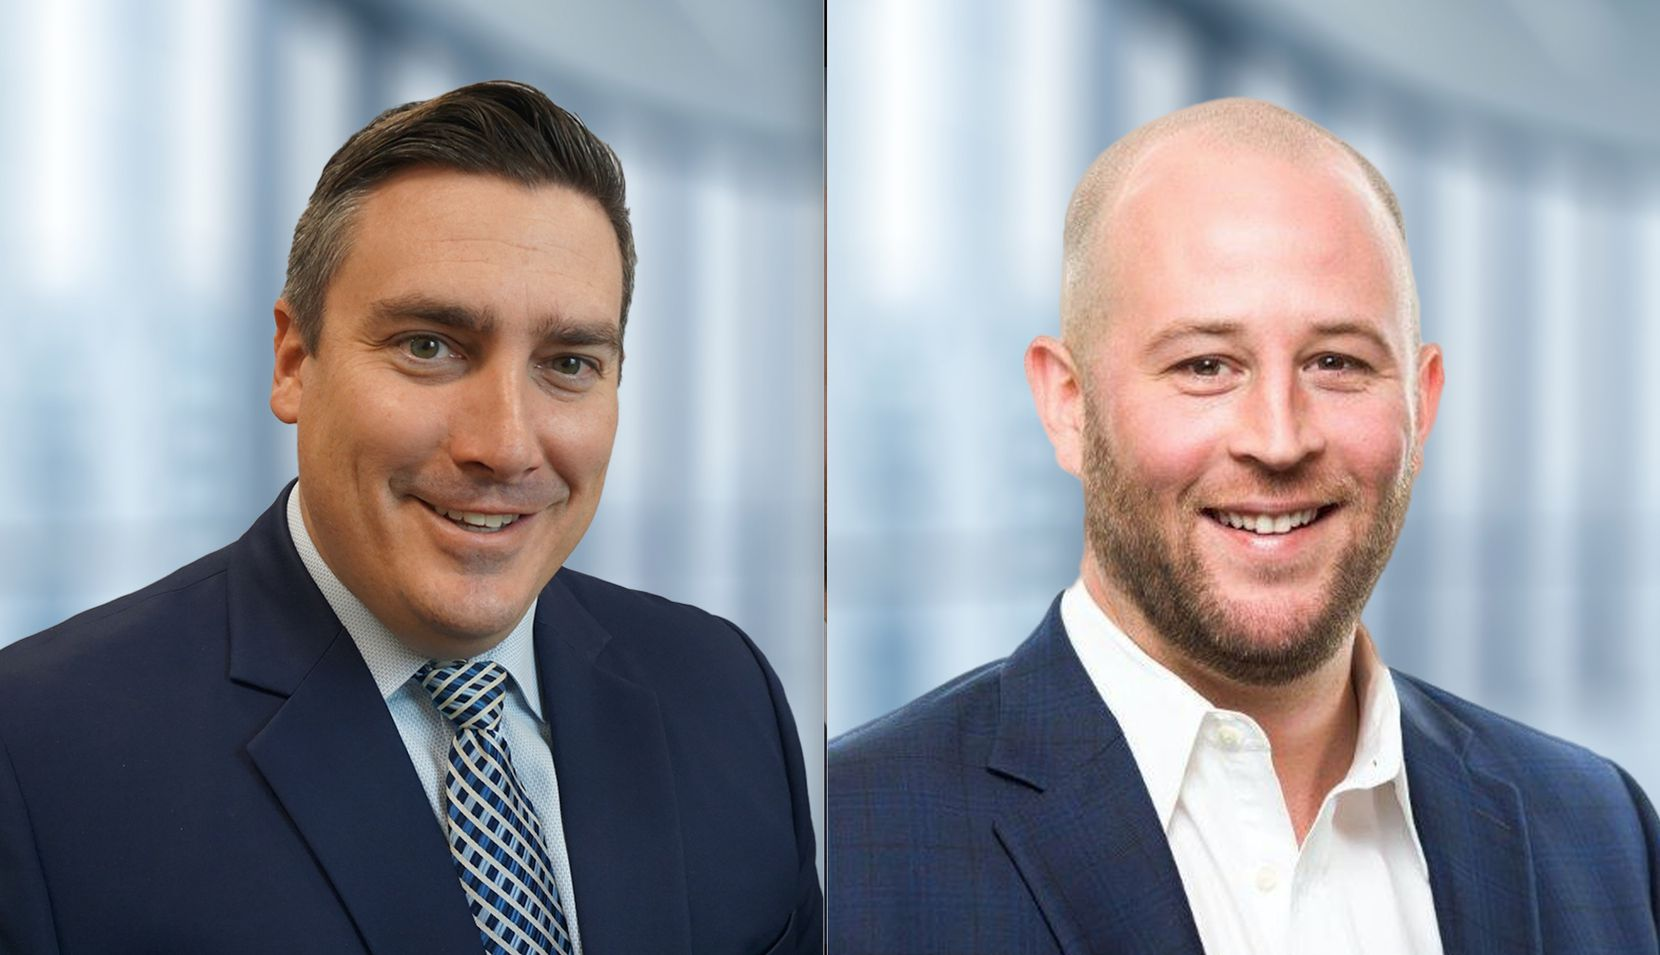 Michael Ware and Taylor Hill have joined Institutional Property Advisors as senior vice presidents.